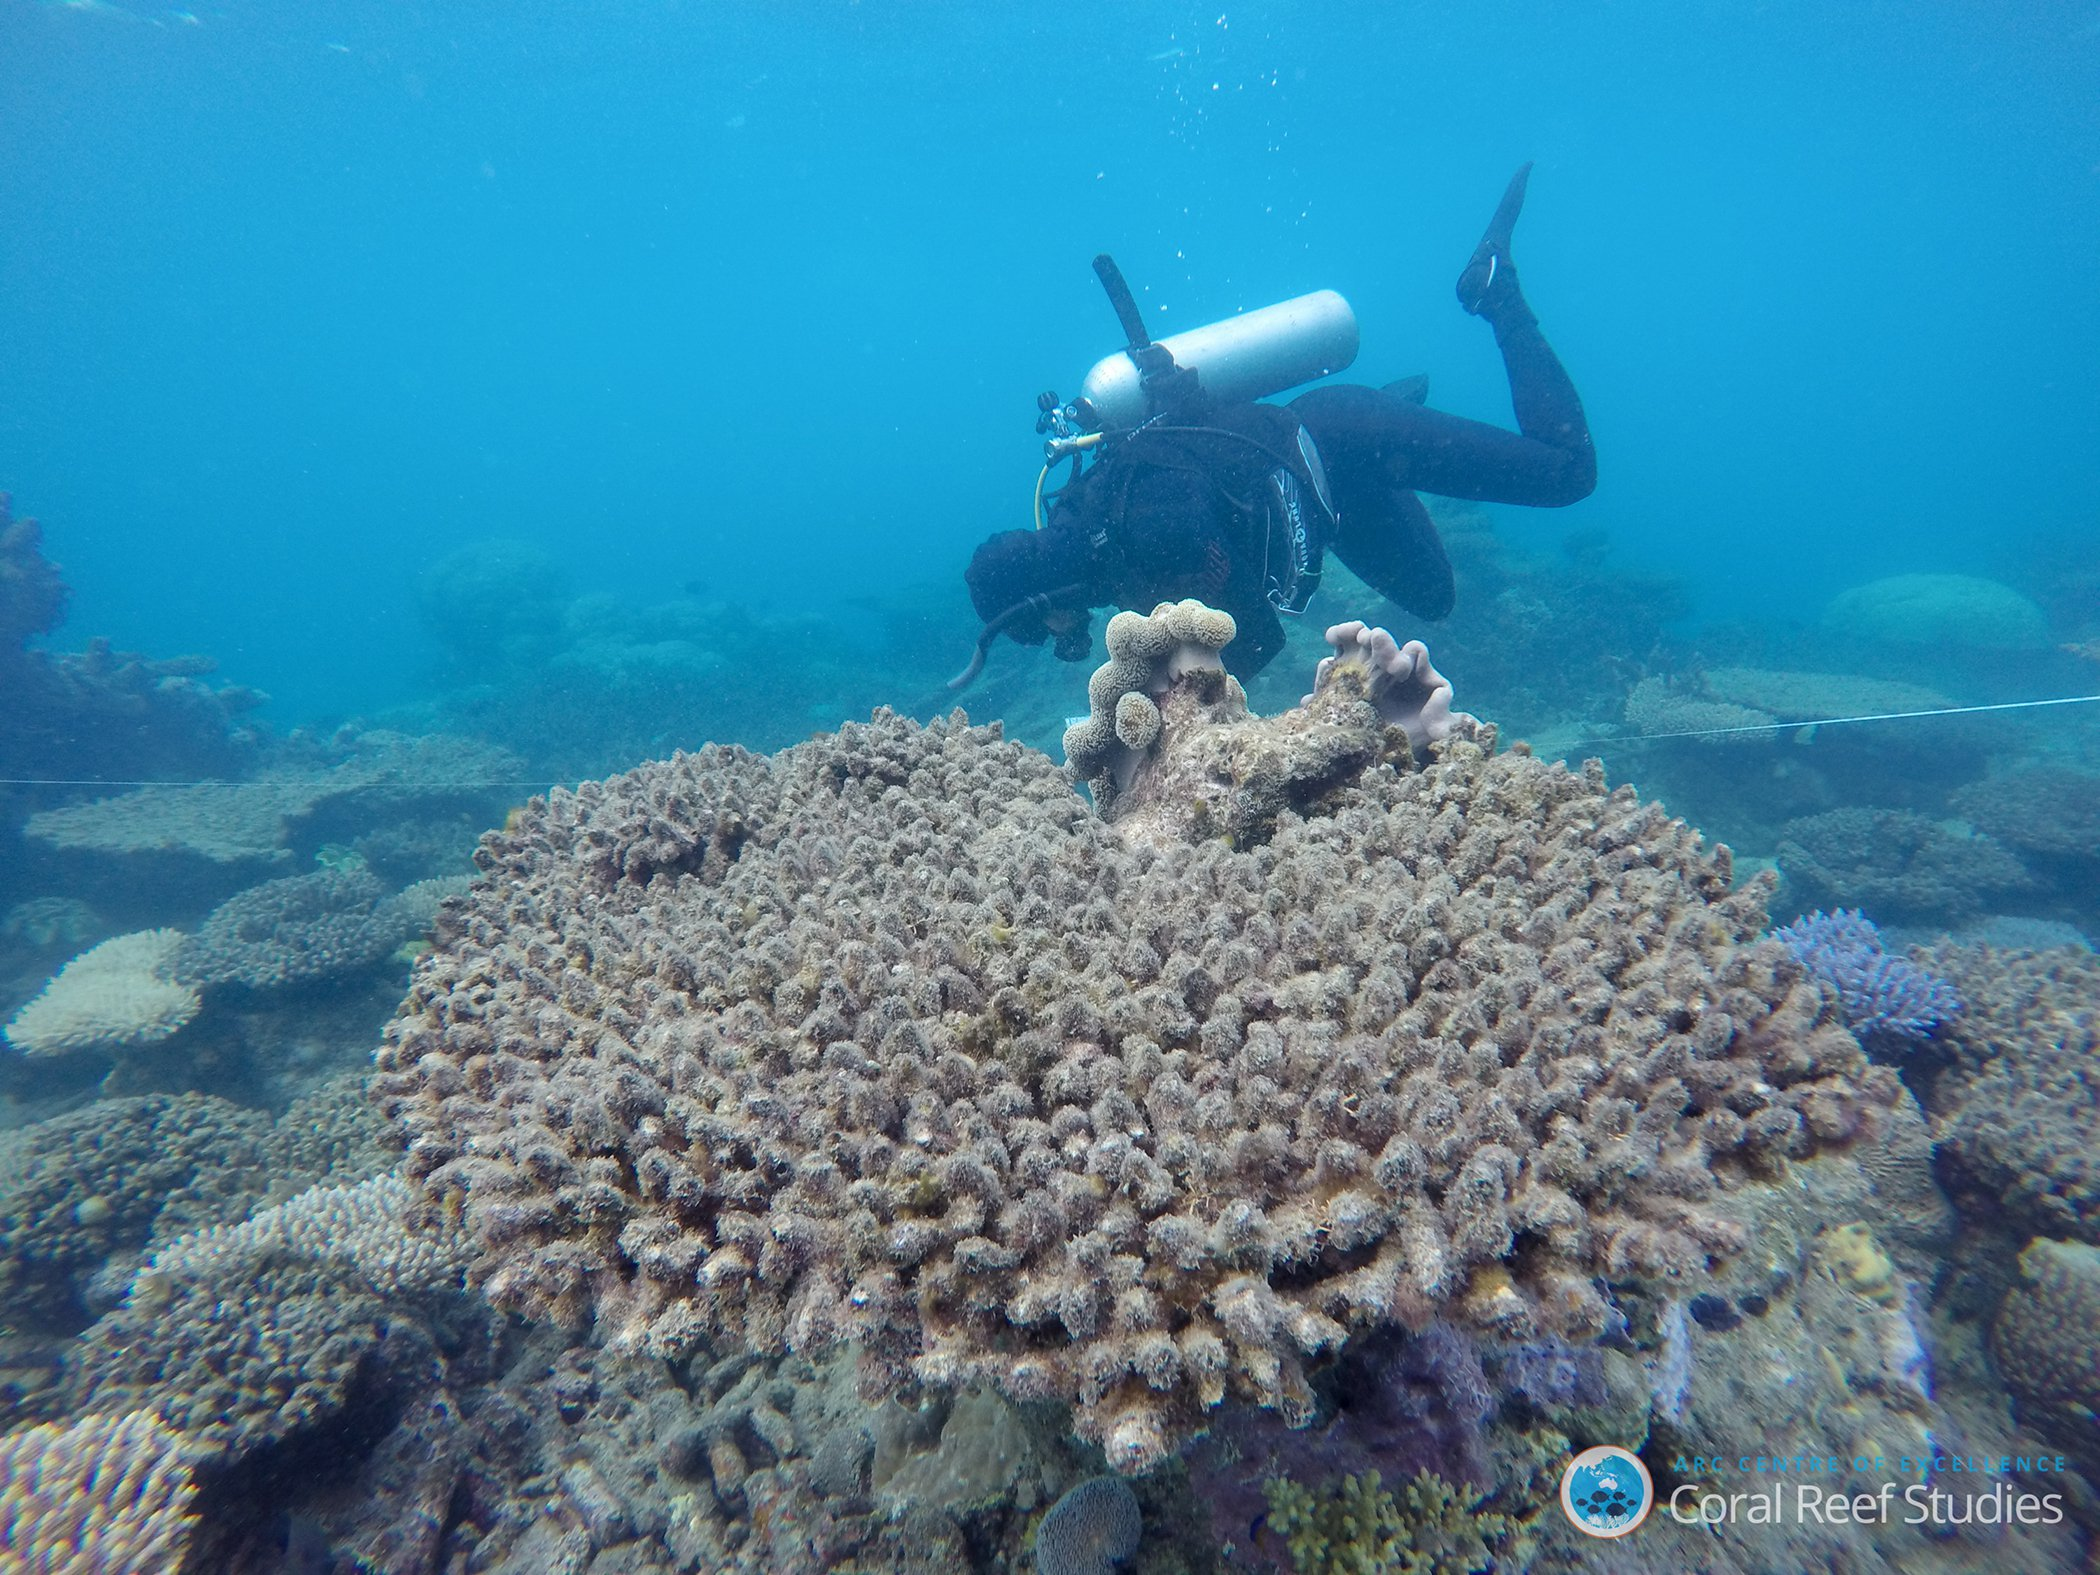 Baby Coral Declined By 89 Across The Great Barrier Reef